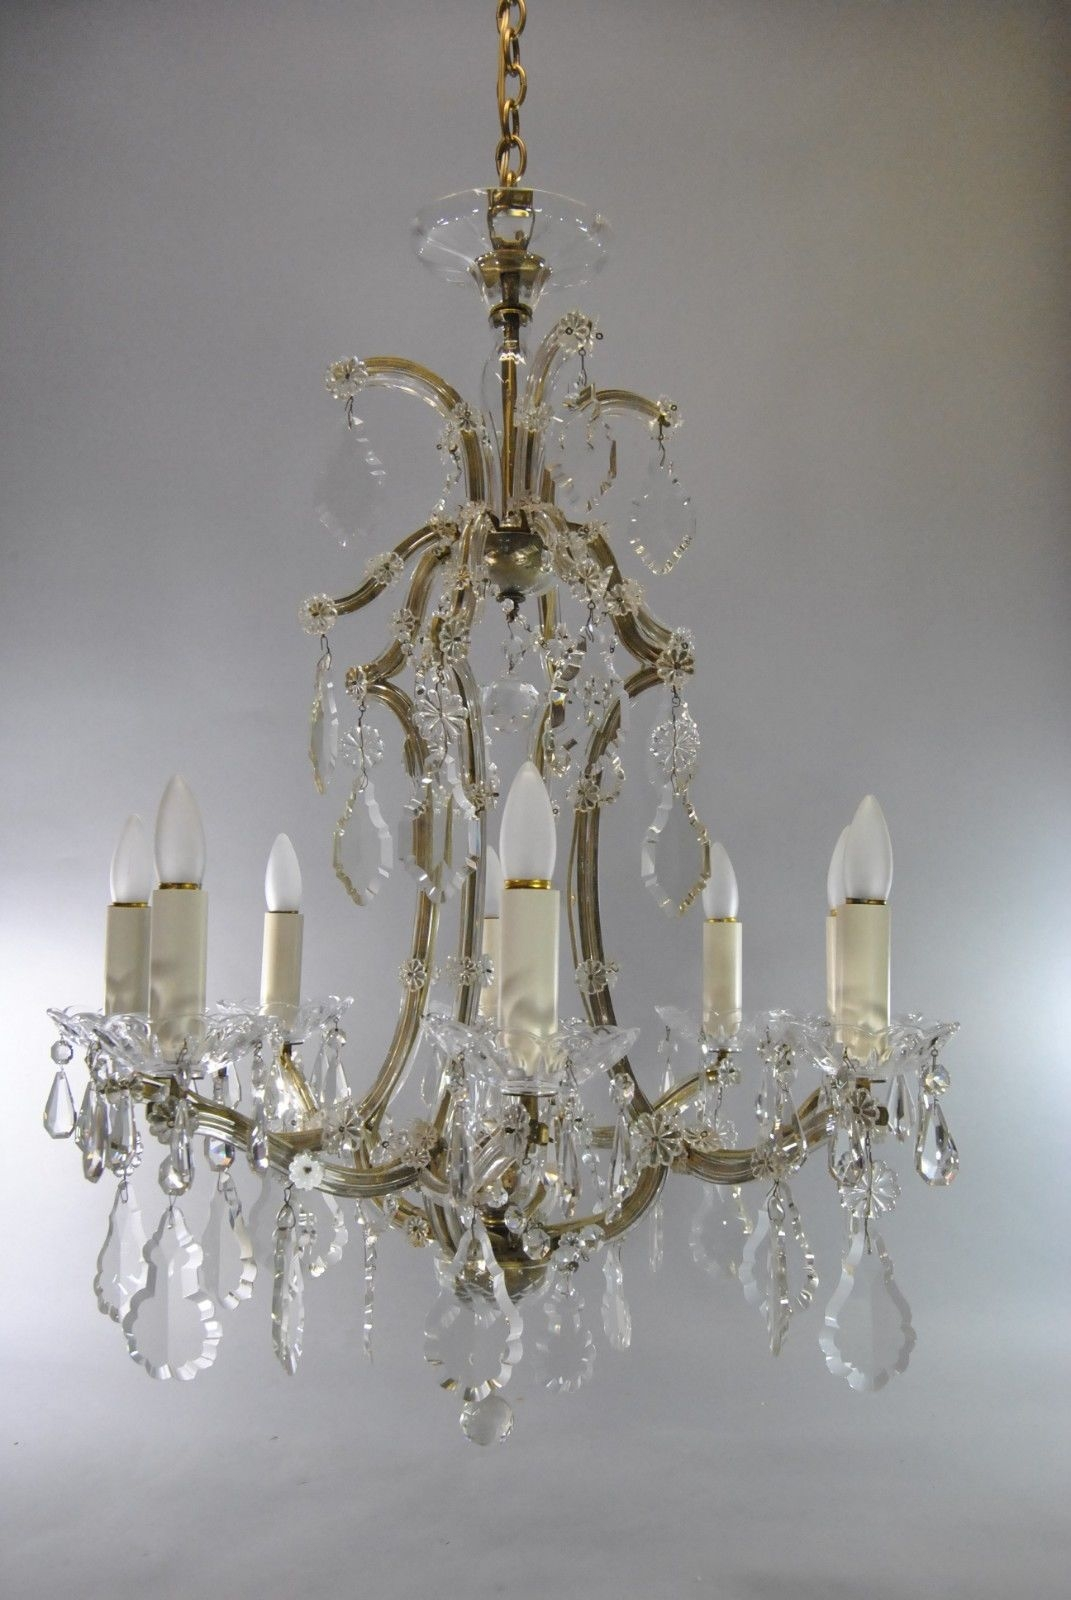 Chandelier Stunning French Crystal Chandelier Empire Chandeliers Pertaining To French Chandeliers (#3 of 12)